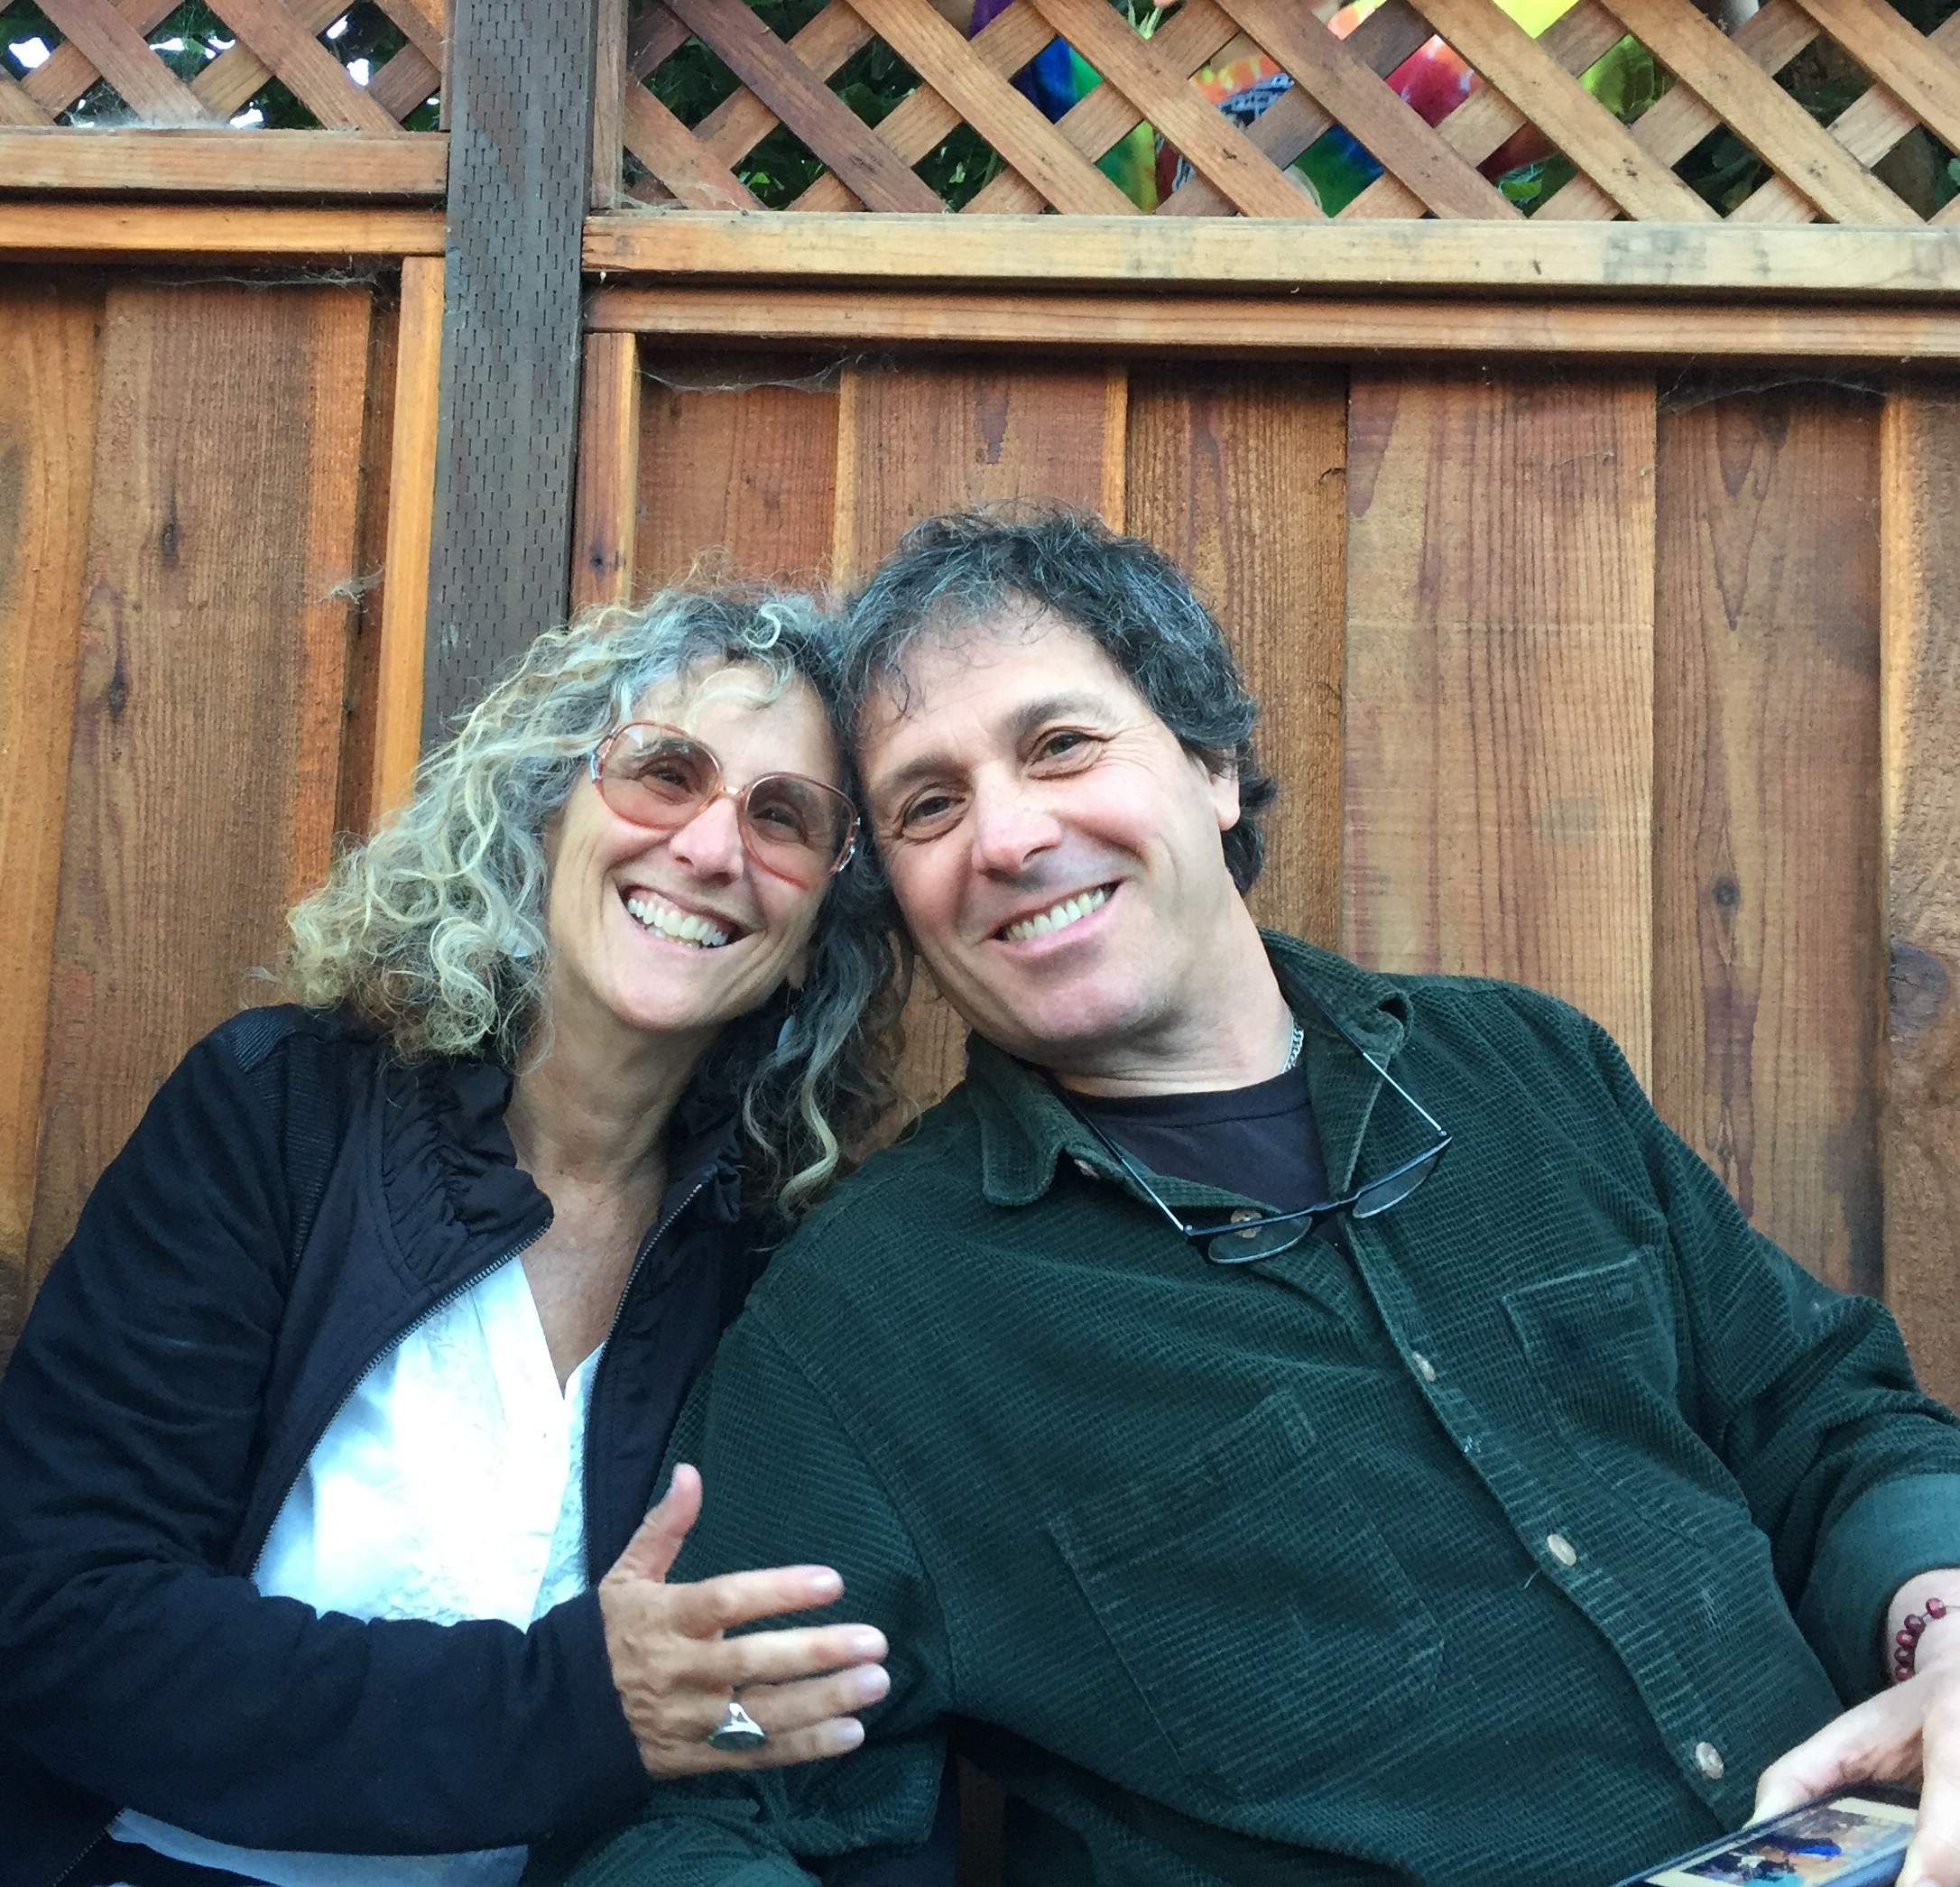 MUSIC WORLD RETREATS - are hosted by Peppino D'Agostino and Donna Wapner. Our goal is to partner with some of our favorite musicians and together create supportive, learning experiences. We pick locations that will encourage the exploration of one's creativity and musicianship. When participants walk away having learned something new, made new friends, are content and inspired, can't wait to join us again and had fun too - we know we have done our job. Thank you to all who have supported these efforts through the years.